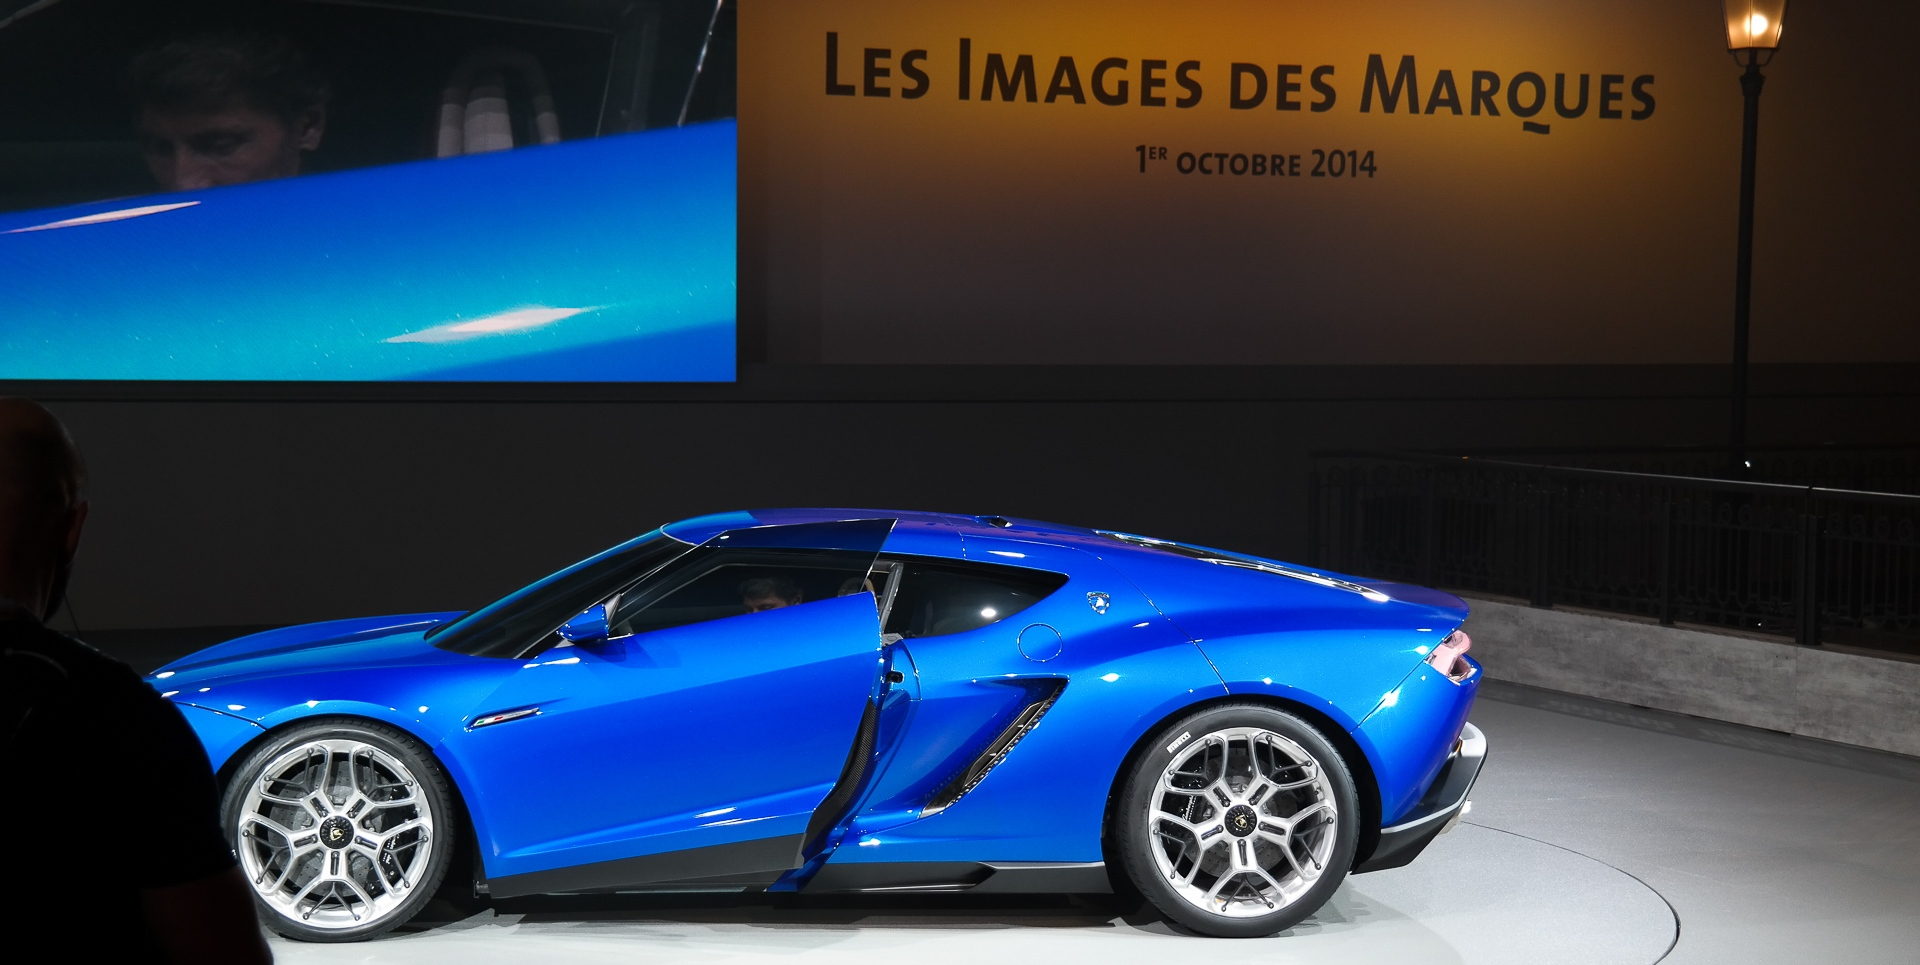 lamborghini-asterion-lp-910-4-looks-like-an-estoque-evora-mashup-live-photos_4